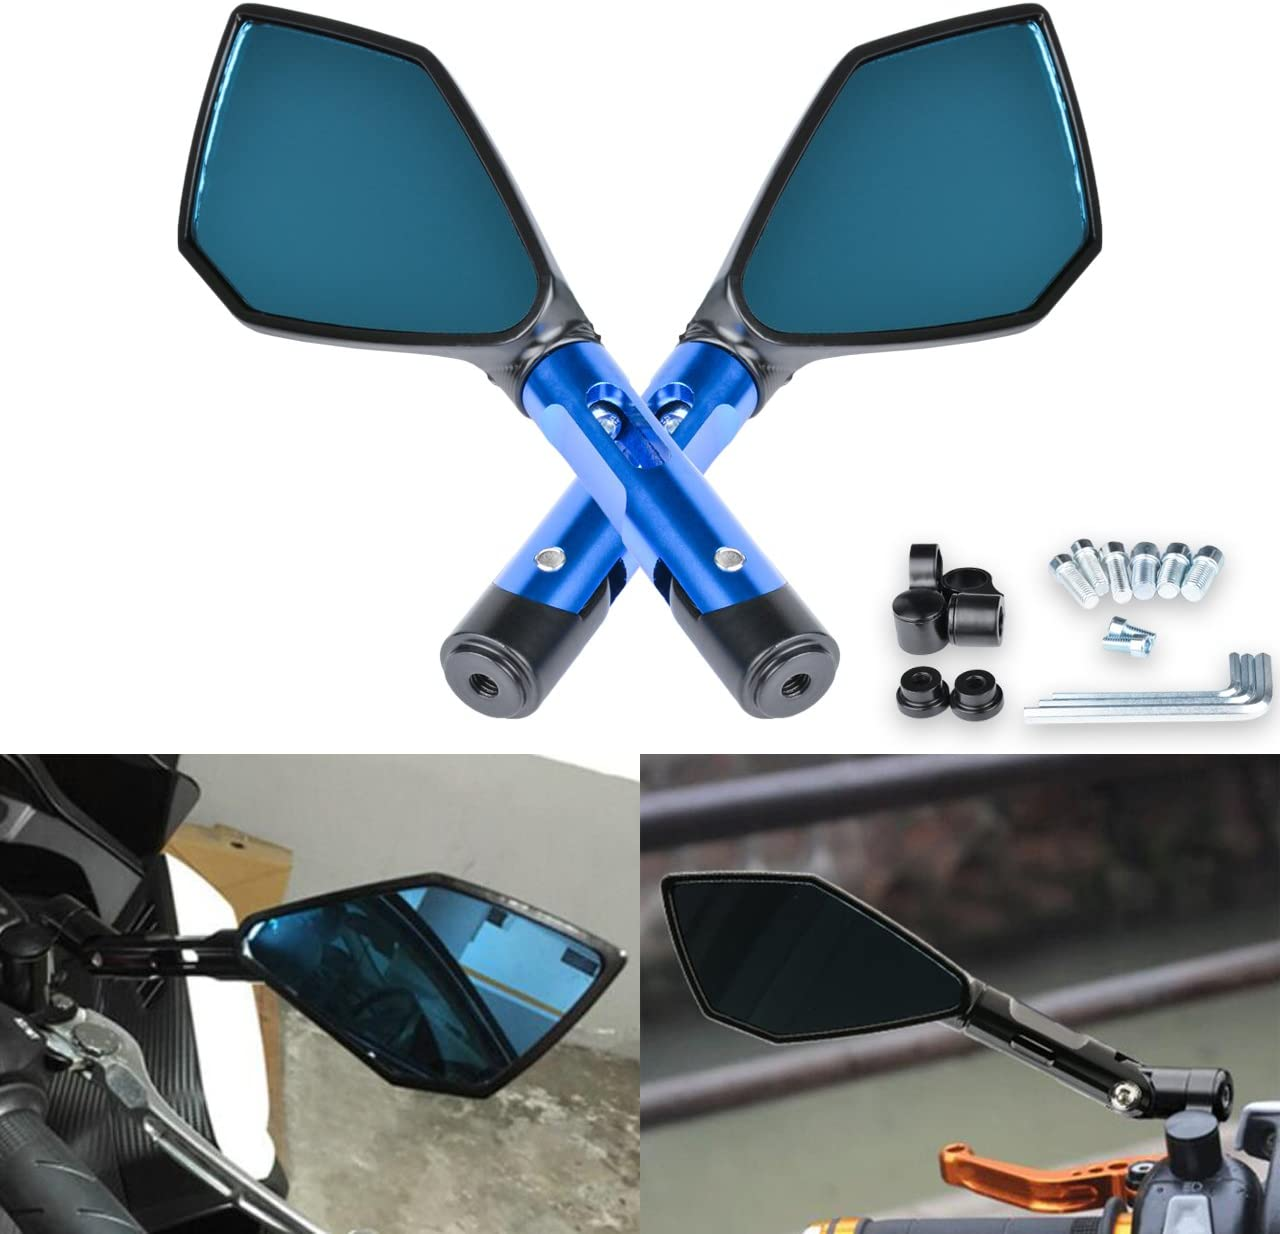 White KIMISS Motorbike Rearview Mirror 1 Pair of Universal Motorcycle Rhombus Reflective Rearview Mirror Modified Accessory